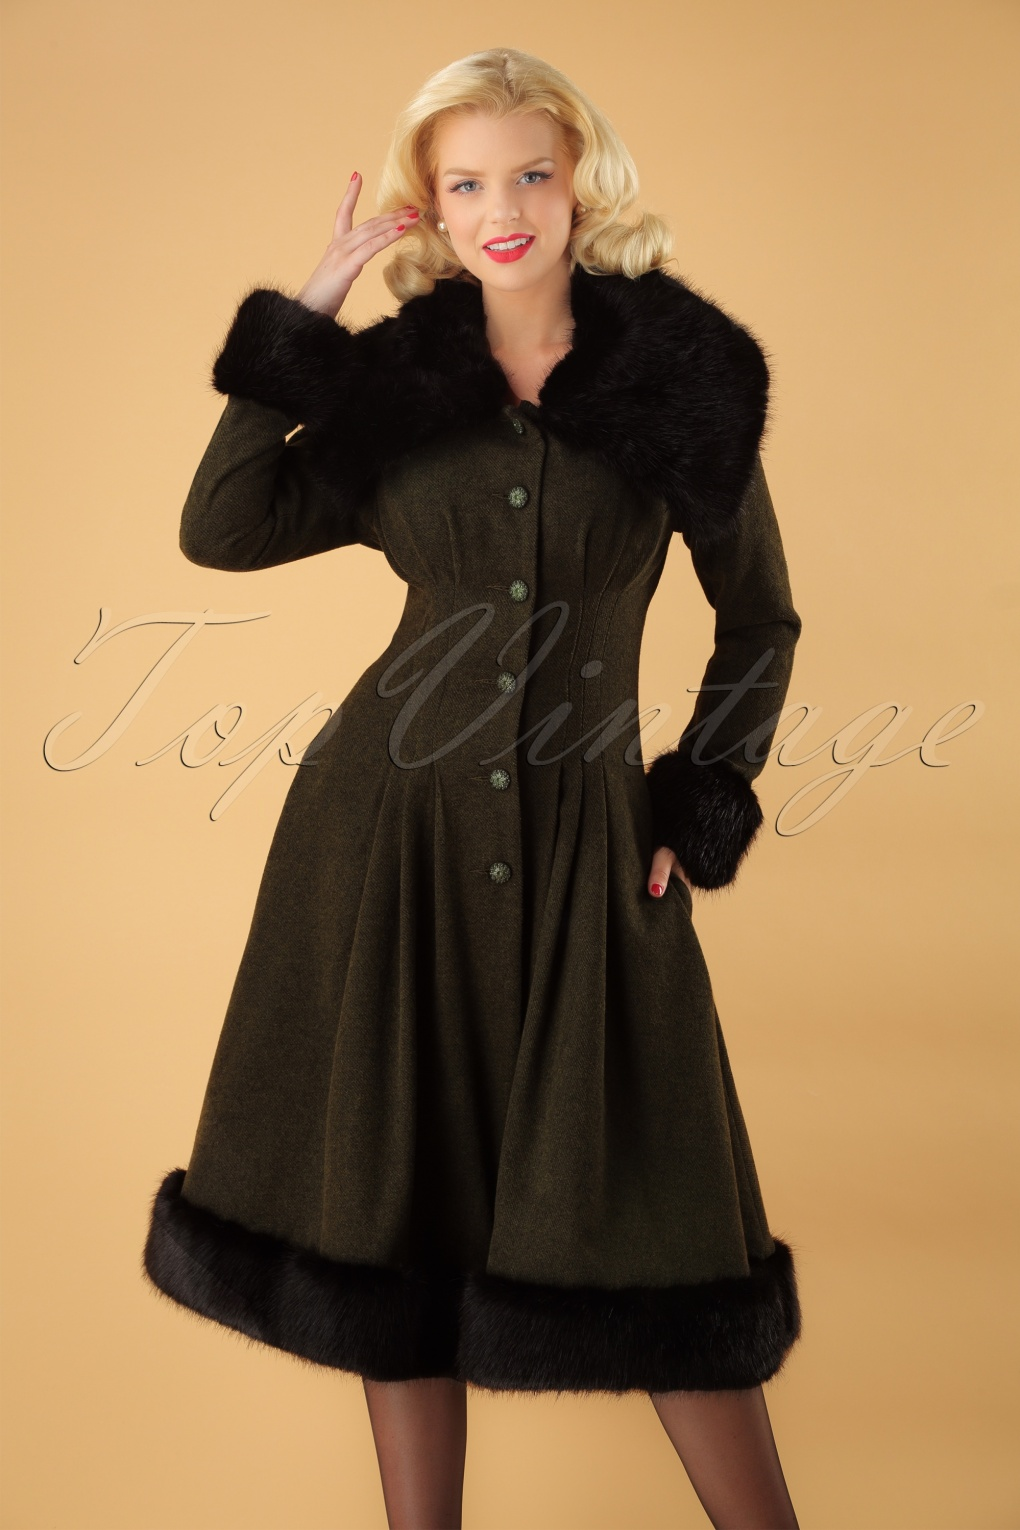 1930s Style Coats, Jackets | Art Deco Outerwear 30s Pearl Coat in Olive Green Wool £138.60 AT vintagedancer.com